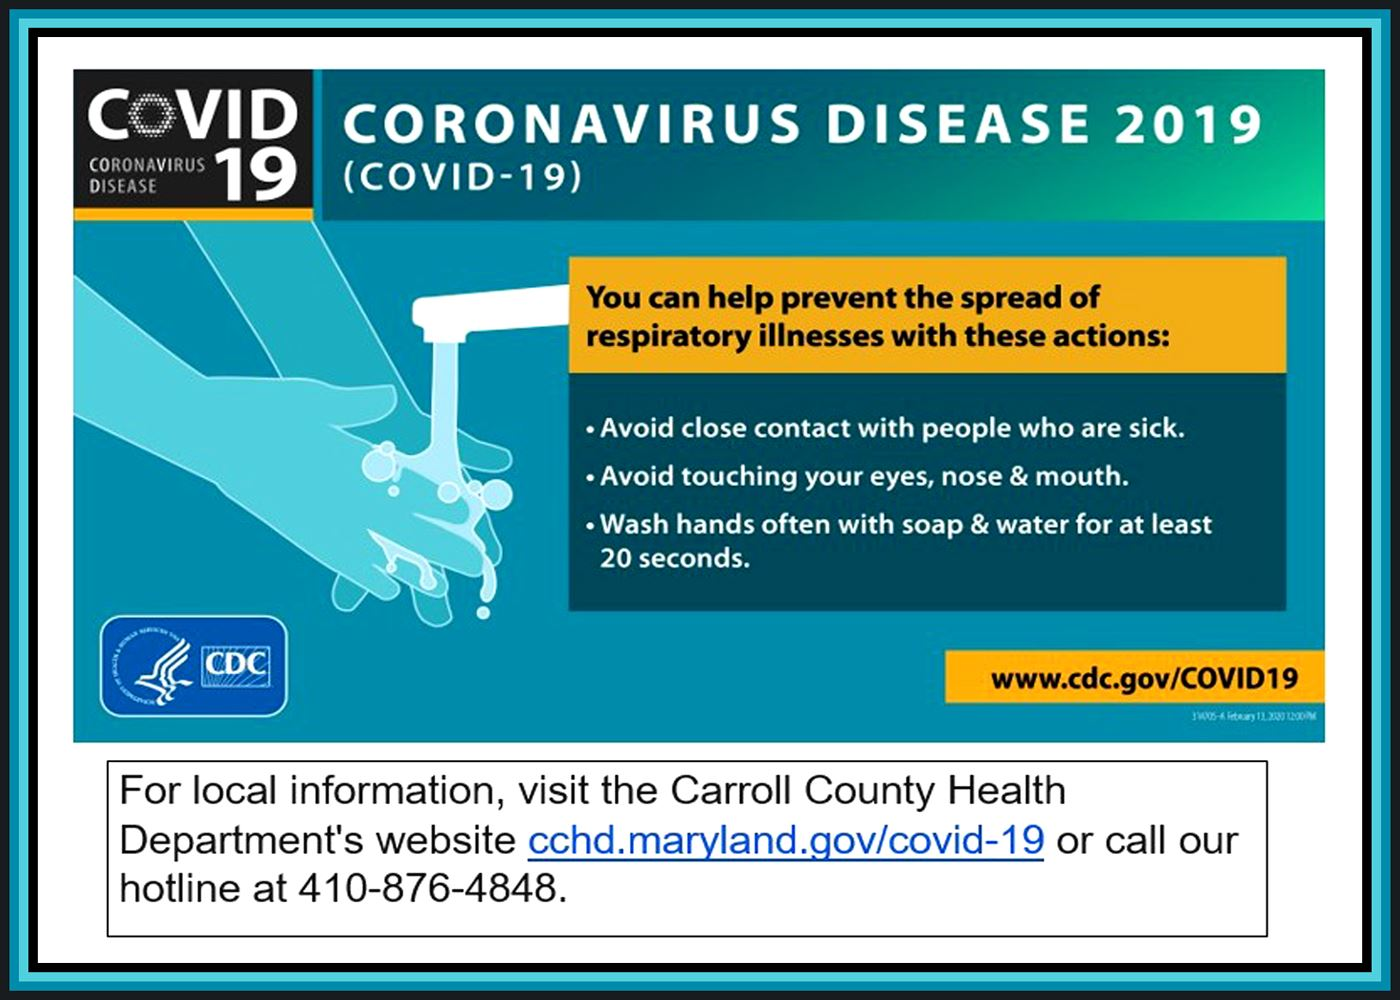 Hotline Information for COVID-19 Concerns